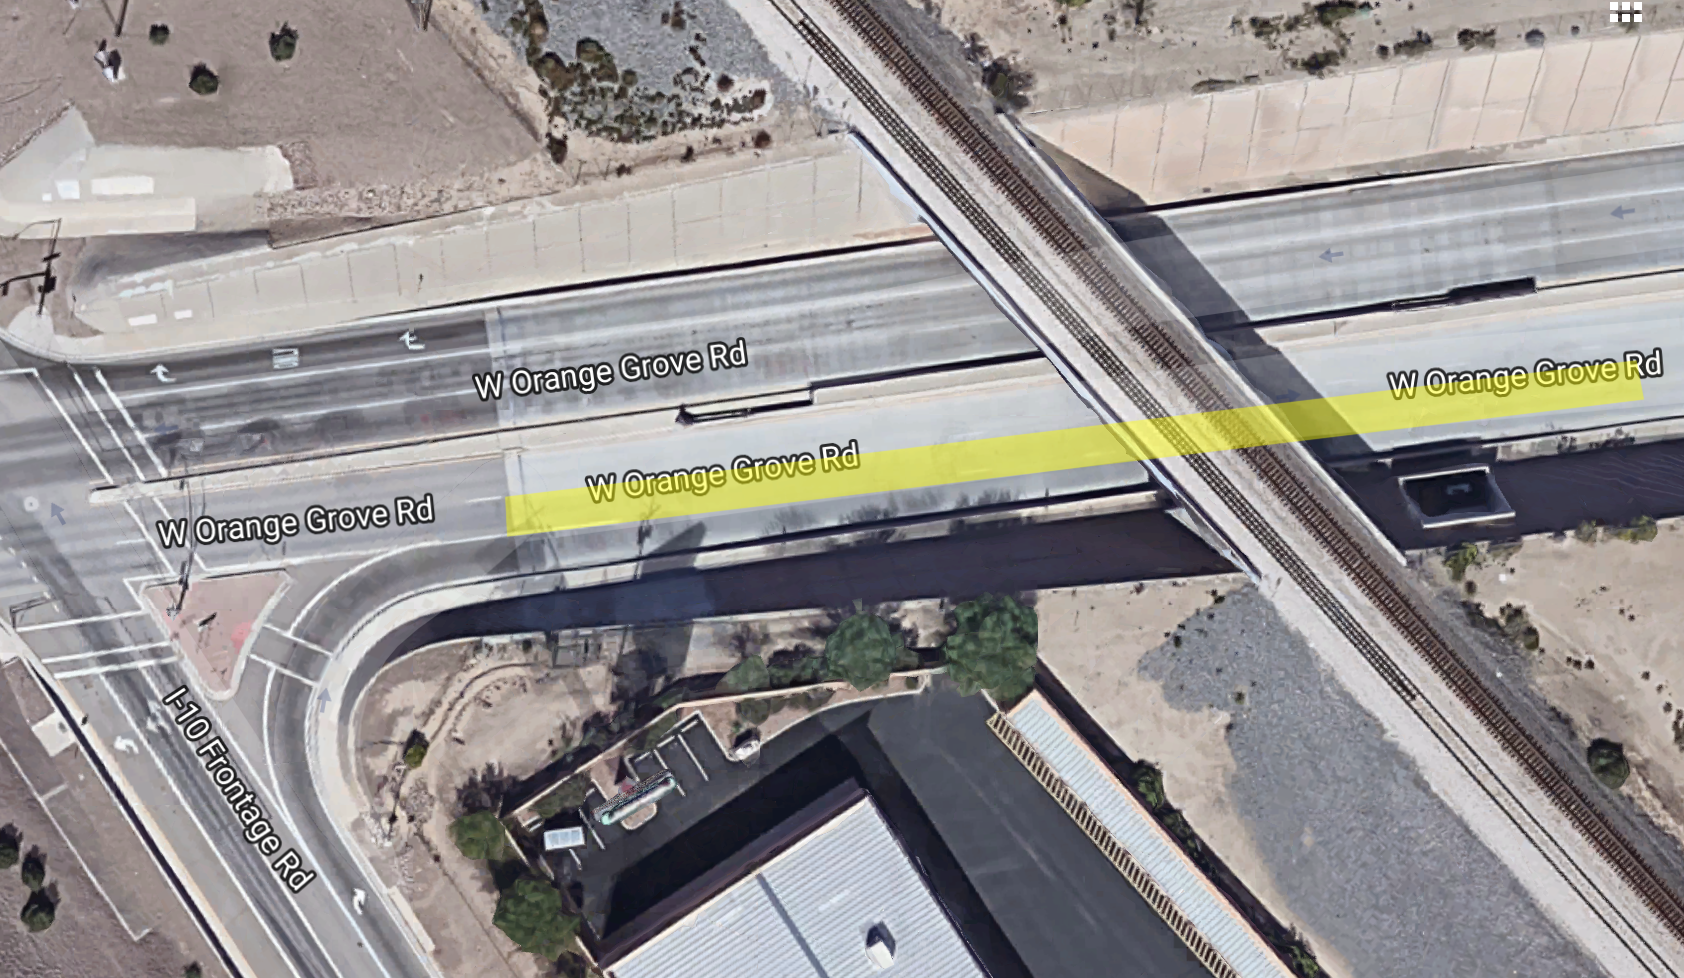 Expect lane closures on Orange Grove on May 10